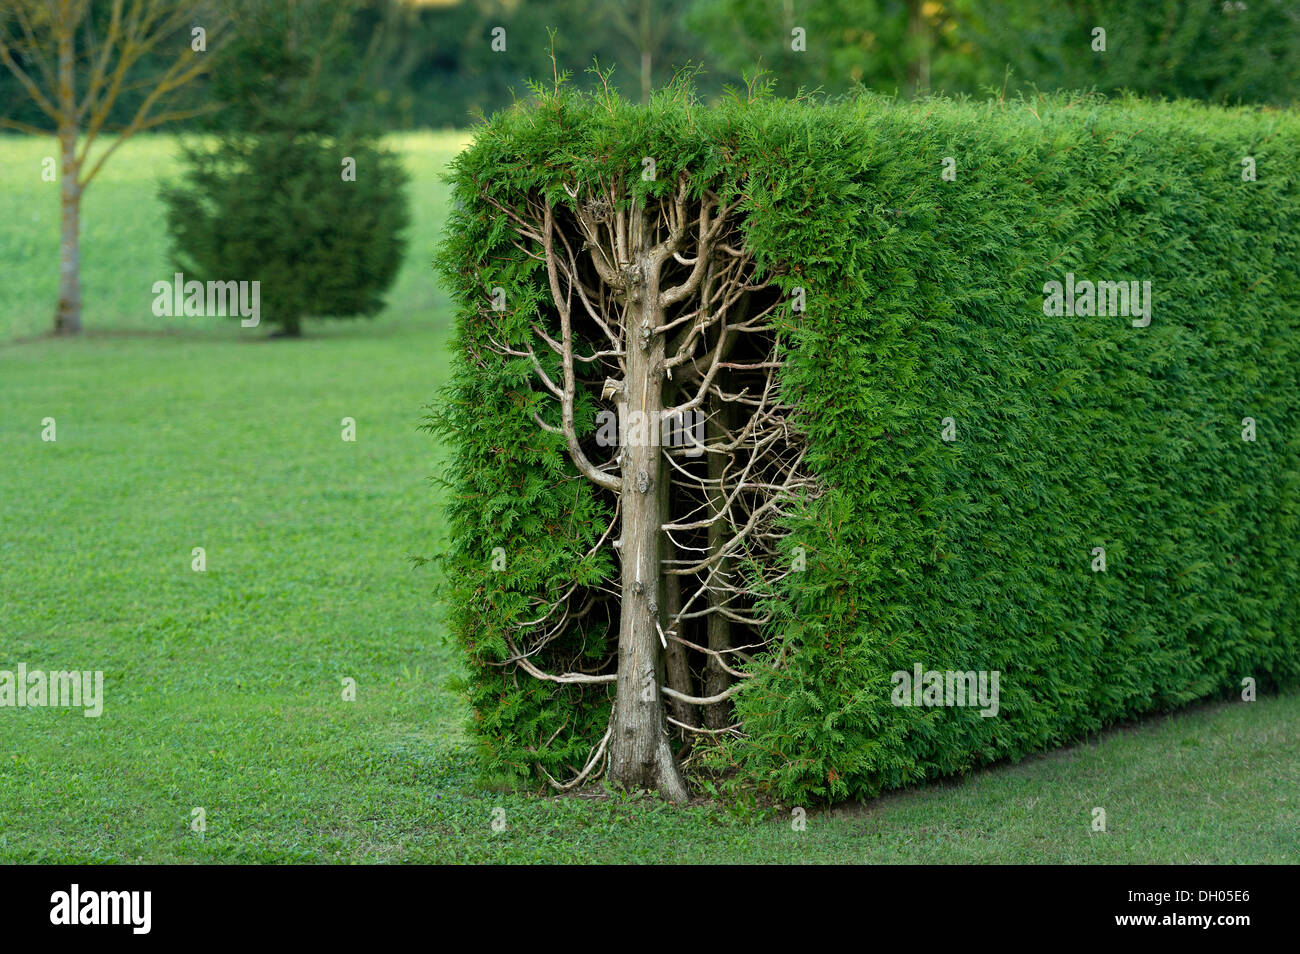 thuja hedge stock photos thuja hedge stock images alamy